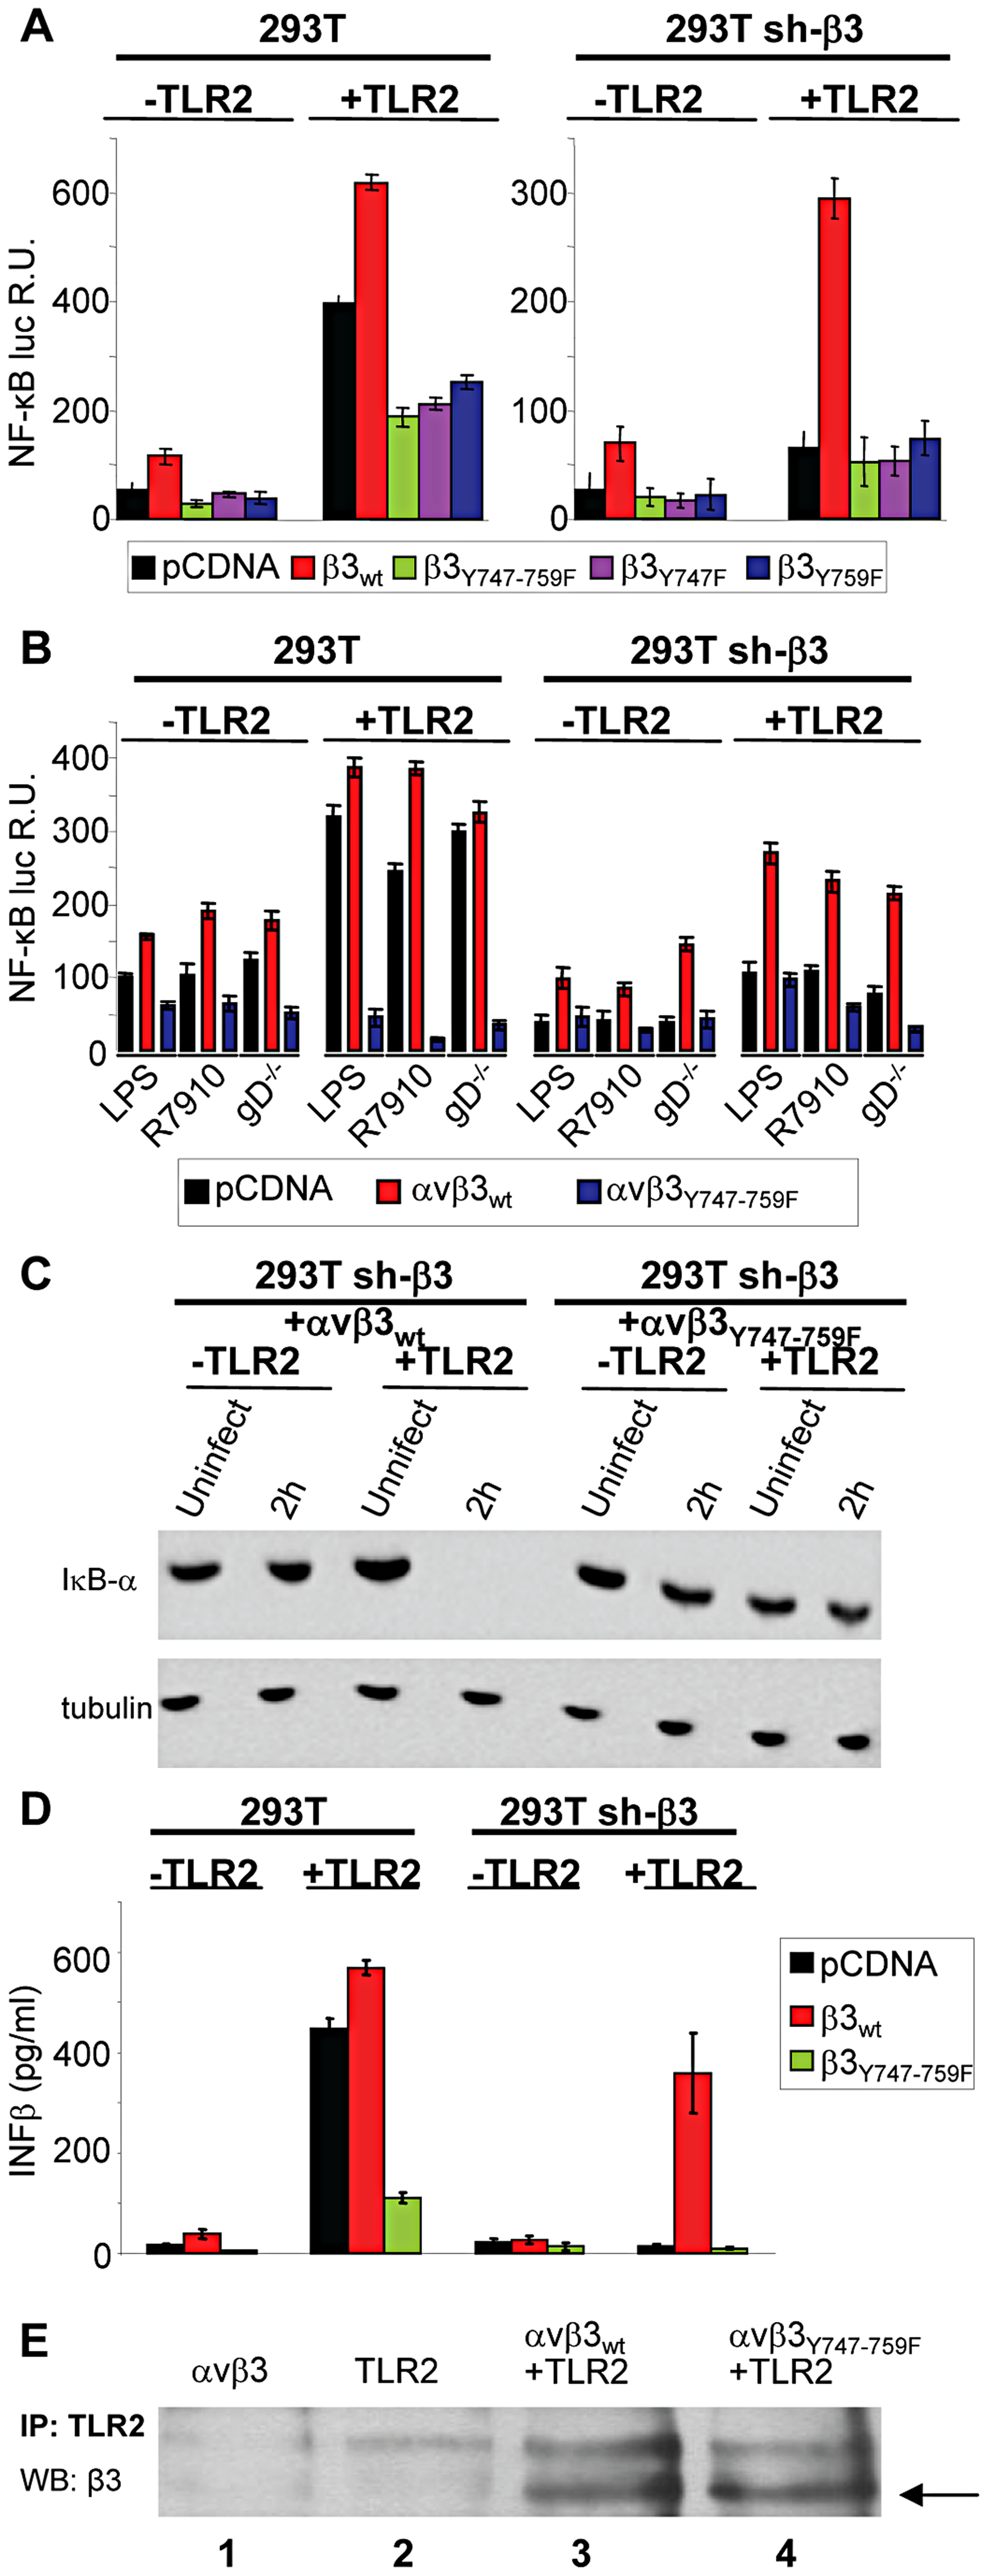 The NF-κB activation induced by HSV or LPS involves signaling through the cytoplasmic tail of β3-integrin.